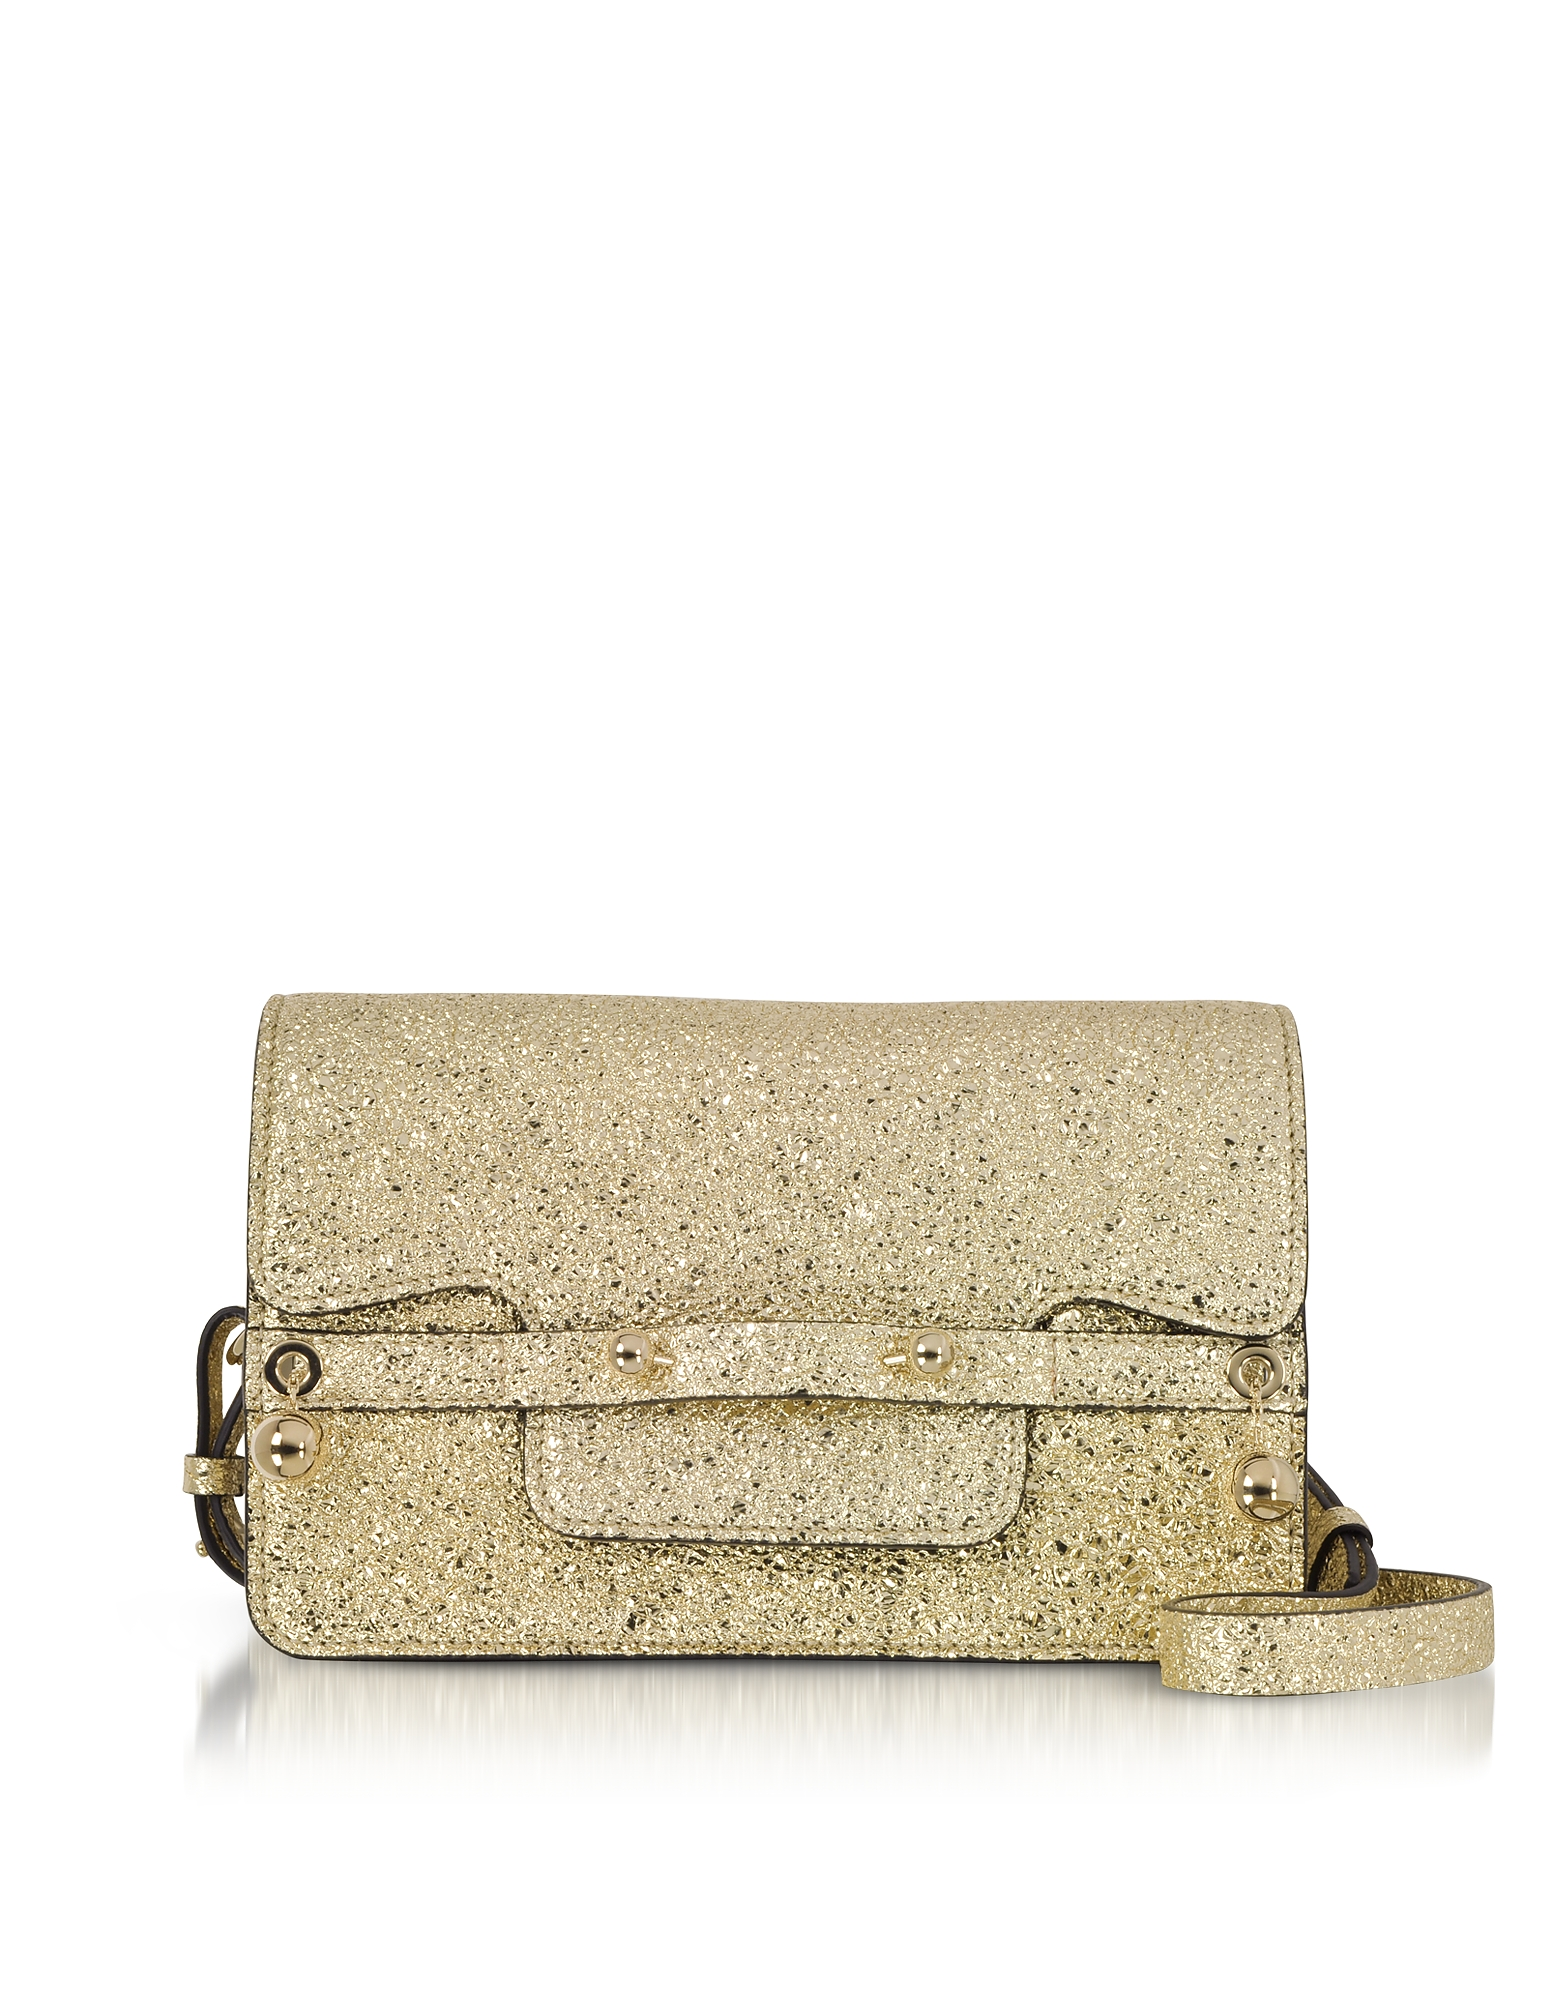 RED Valentino Designer Handbags, Platinum Crackled Metallic Leather Flap Top Crossbody Bag